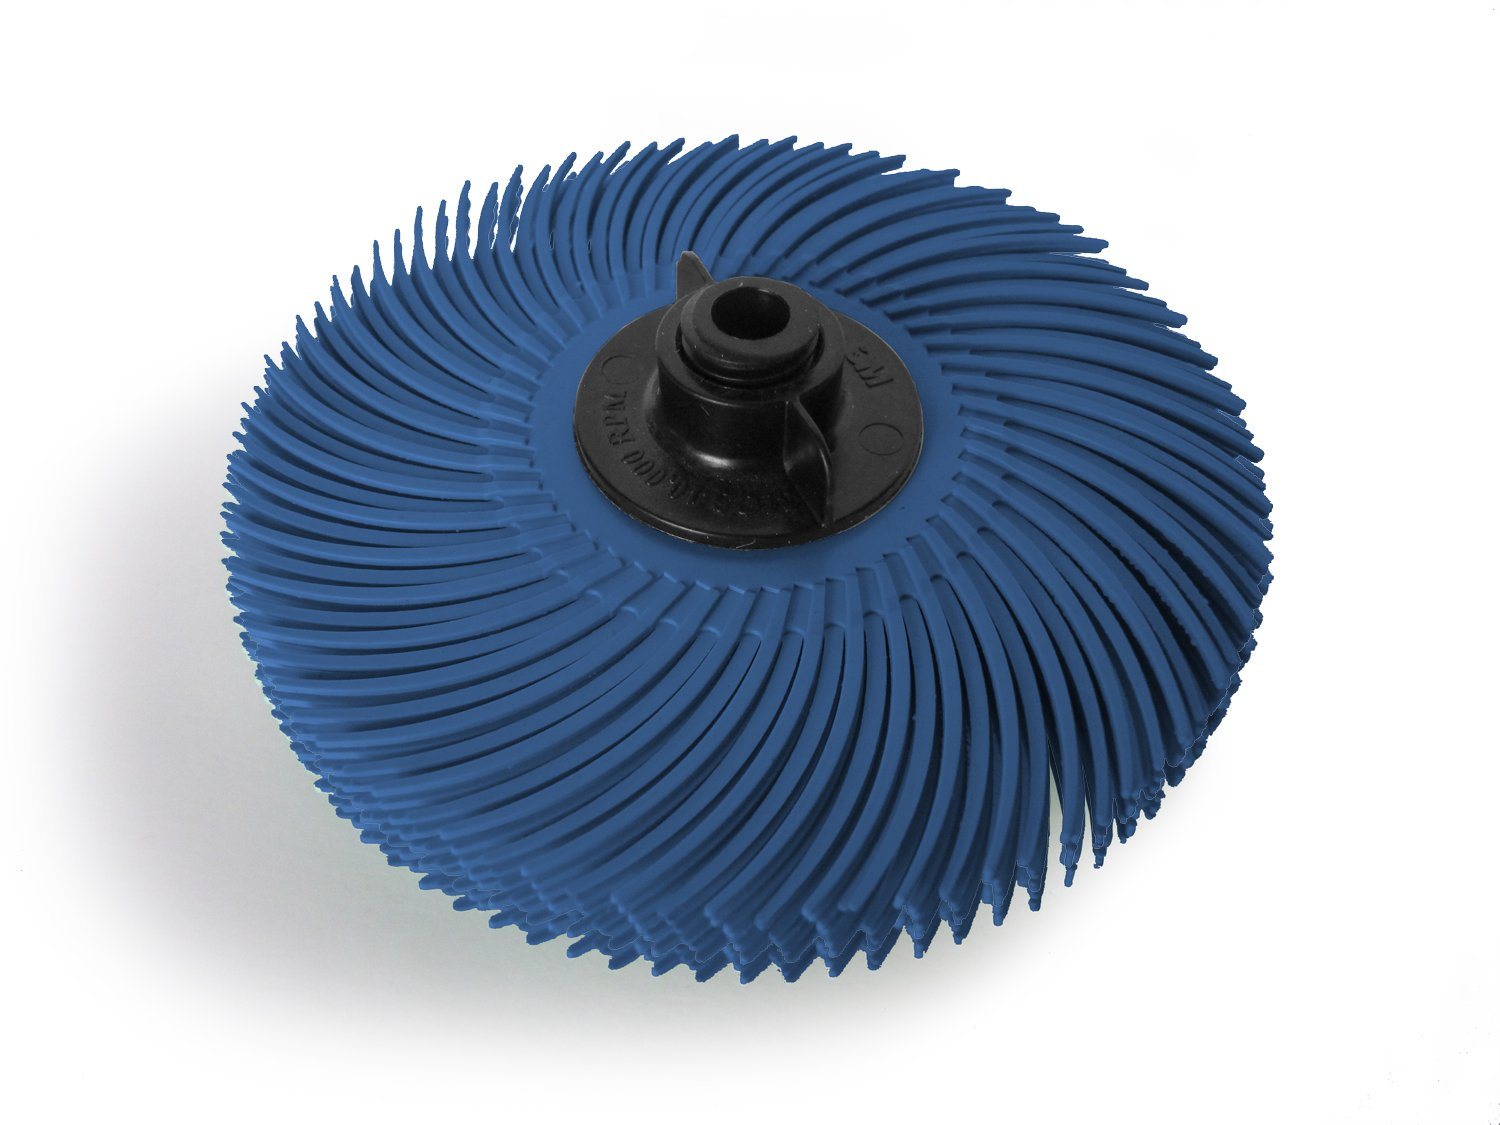 JoolTool 3M Scotch-Brite Blue Radial Bristle Brush Assembled with Plastic Tapered Mandrel Hub, 6 Ply, 3'' Diameter, Grit 400